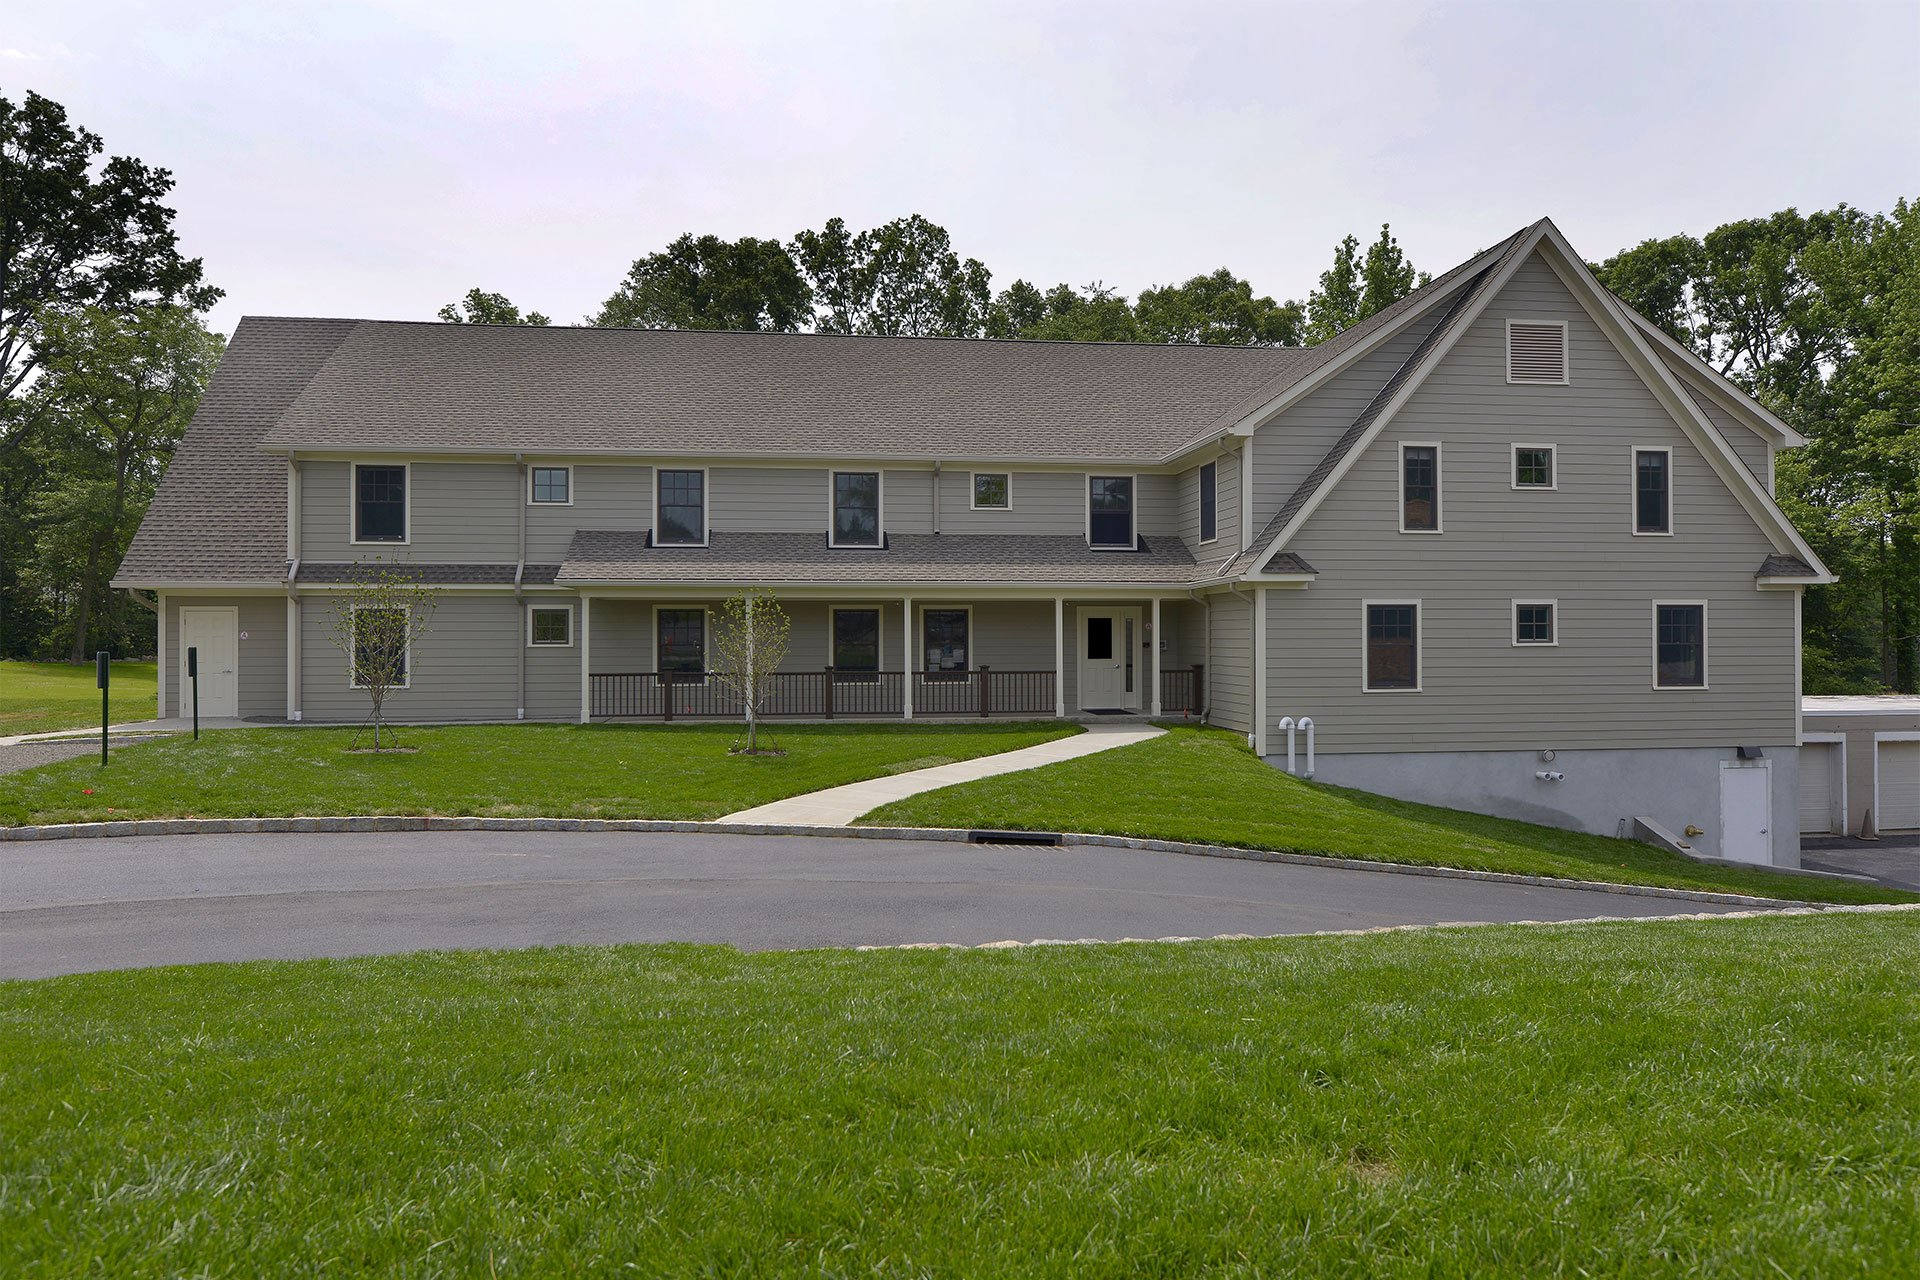 murphy-brothers-contracting-commercial-mamk-winged-foot_exterior-staff-housing-building-01